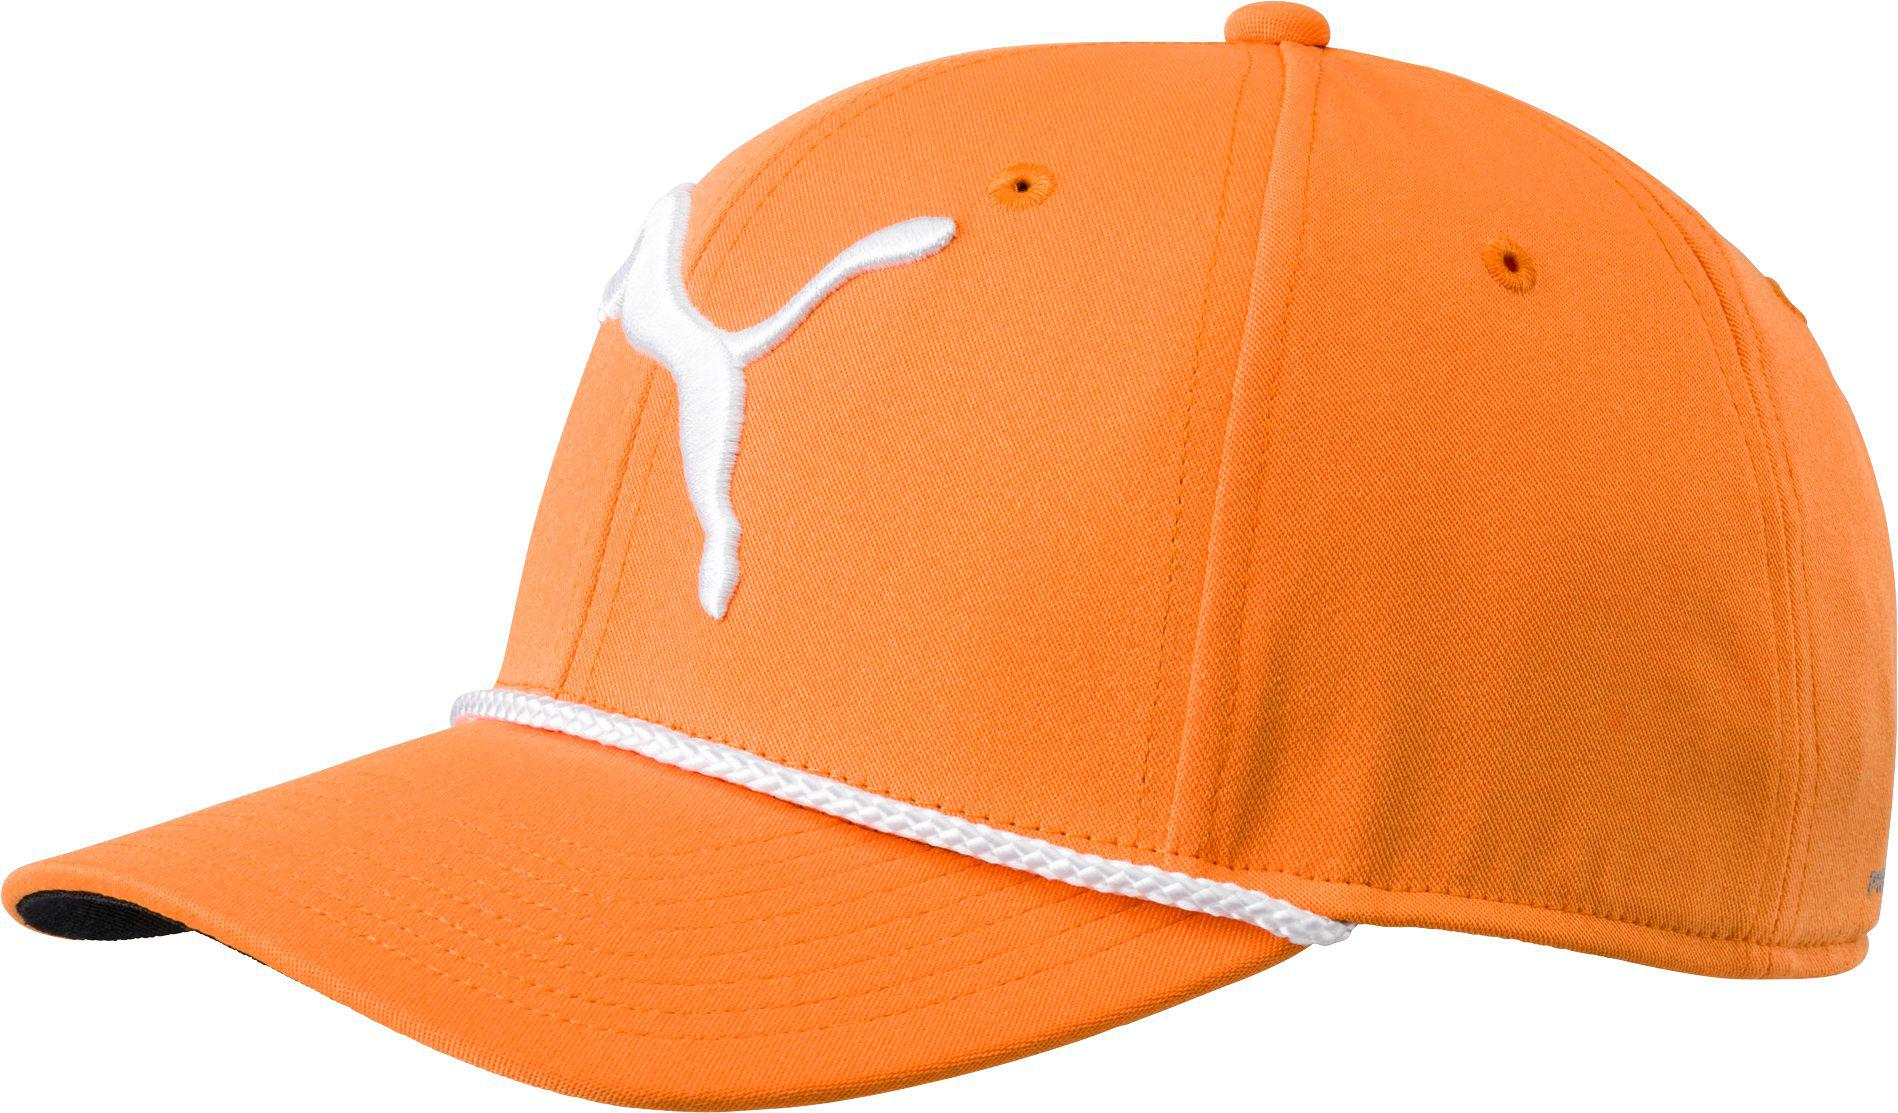 Lyst - PUMA Youth  gotime Rope Golf Hat in Orange for Men 7df5647887c